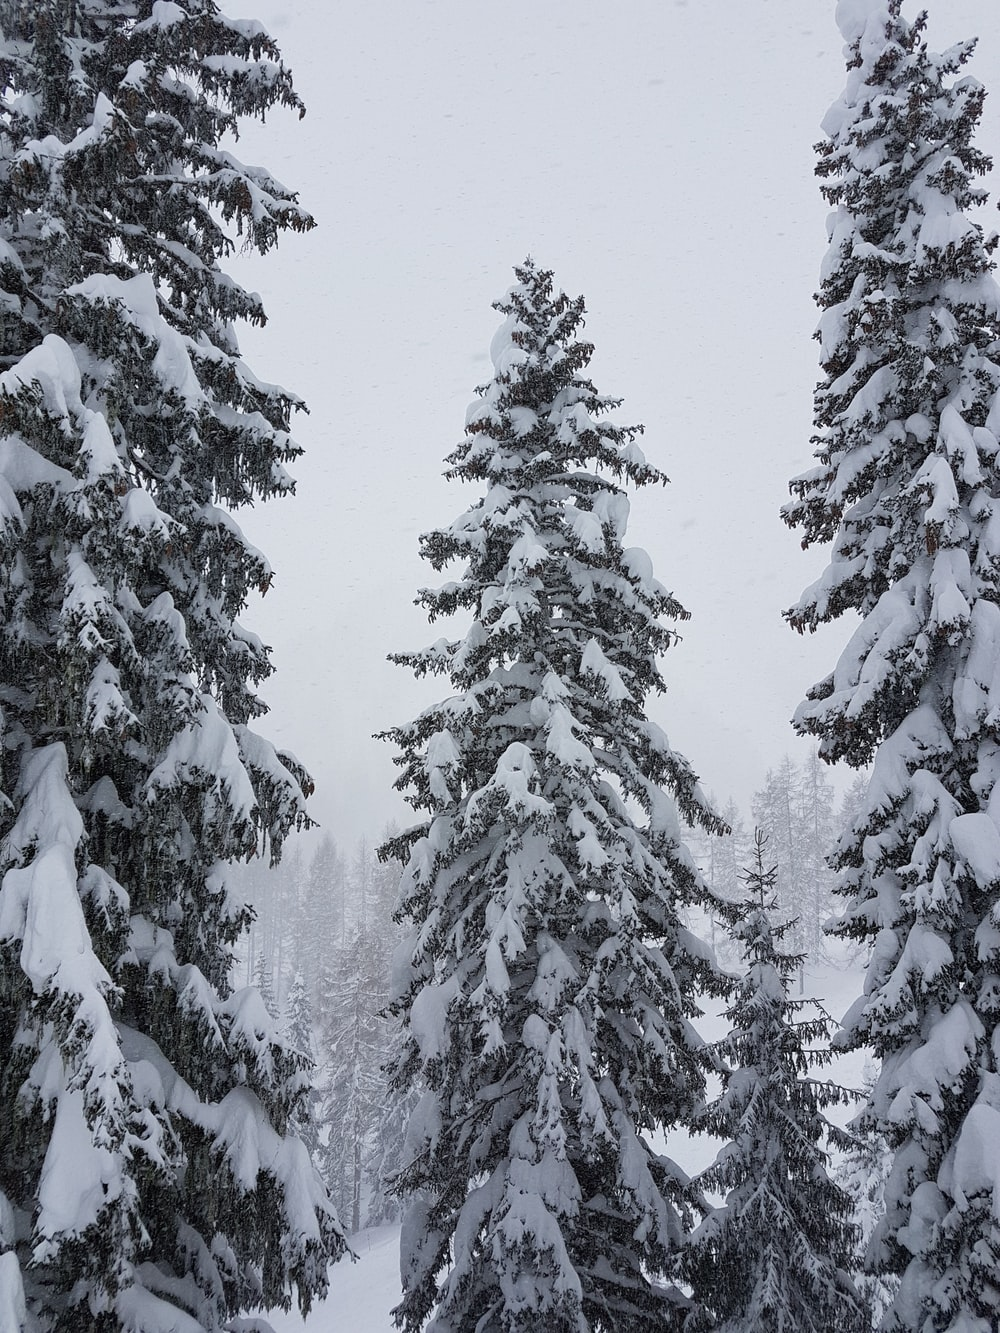 snow covered pine trees on snow field